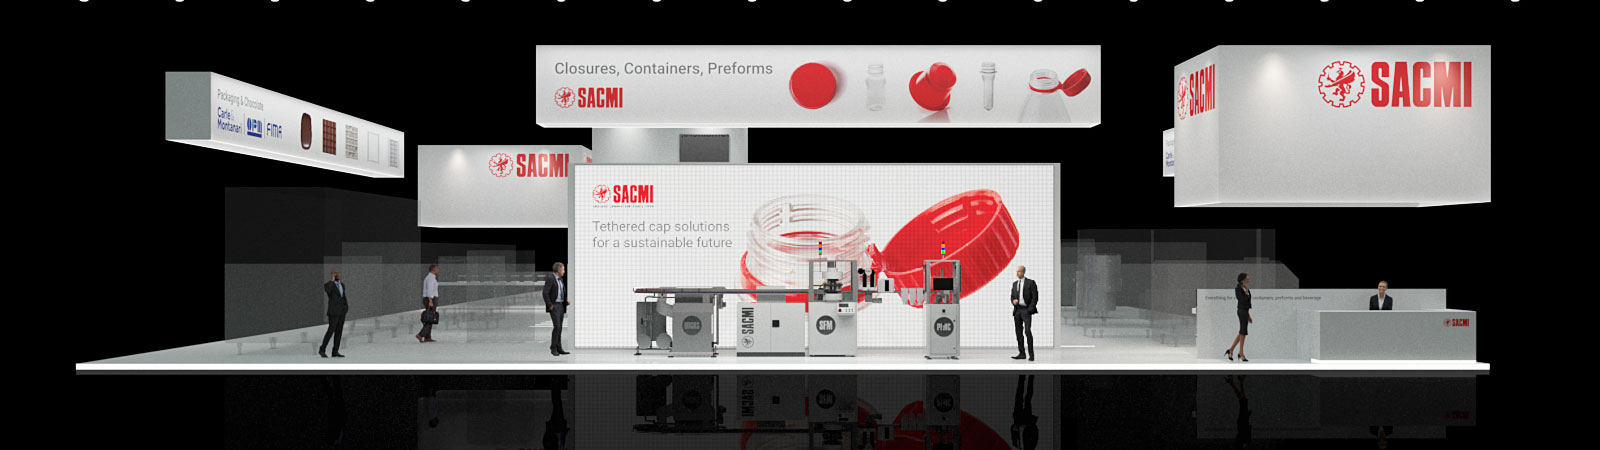 Tethered r-evolution: the SACMI virtual booth at Interpack 2020